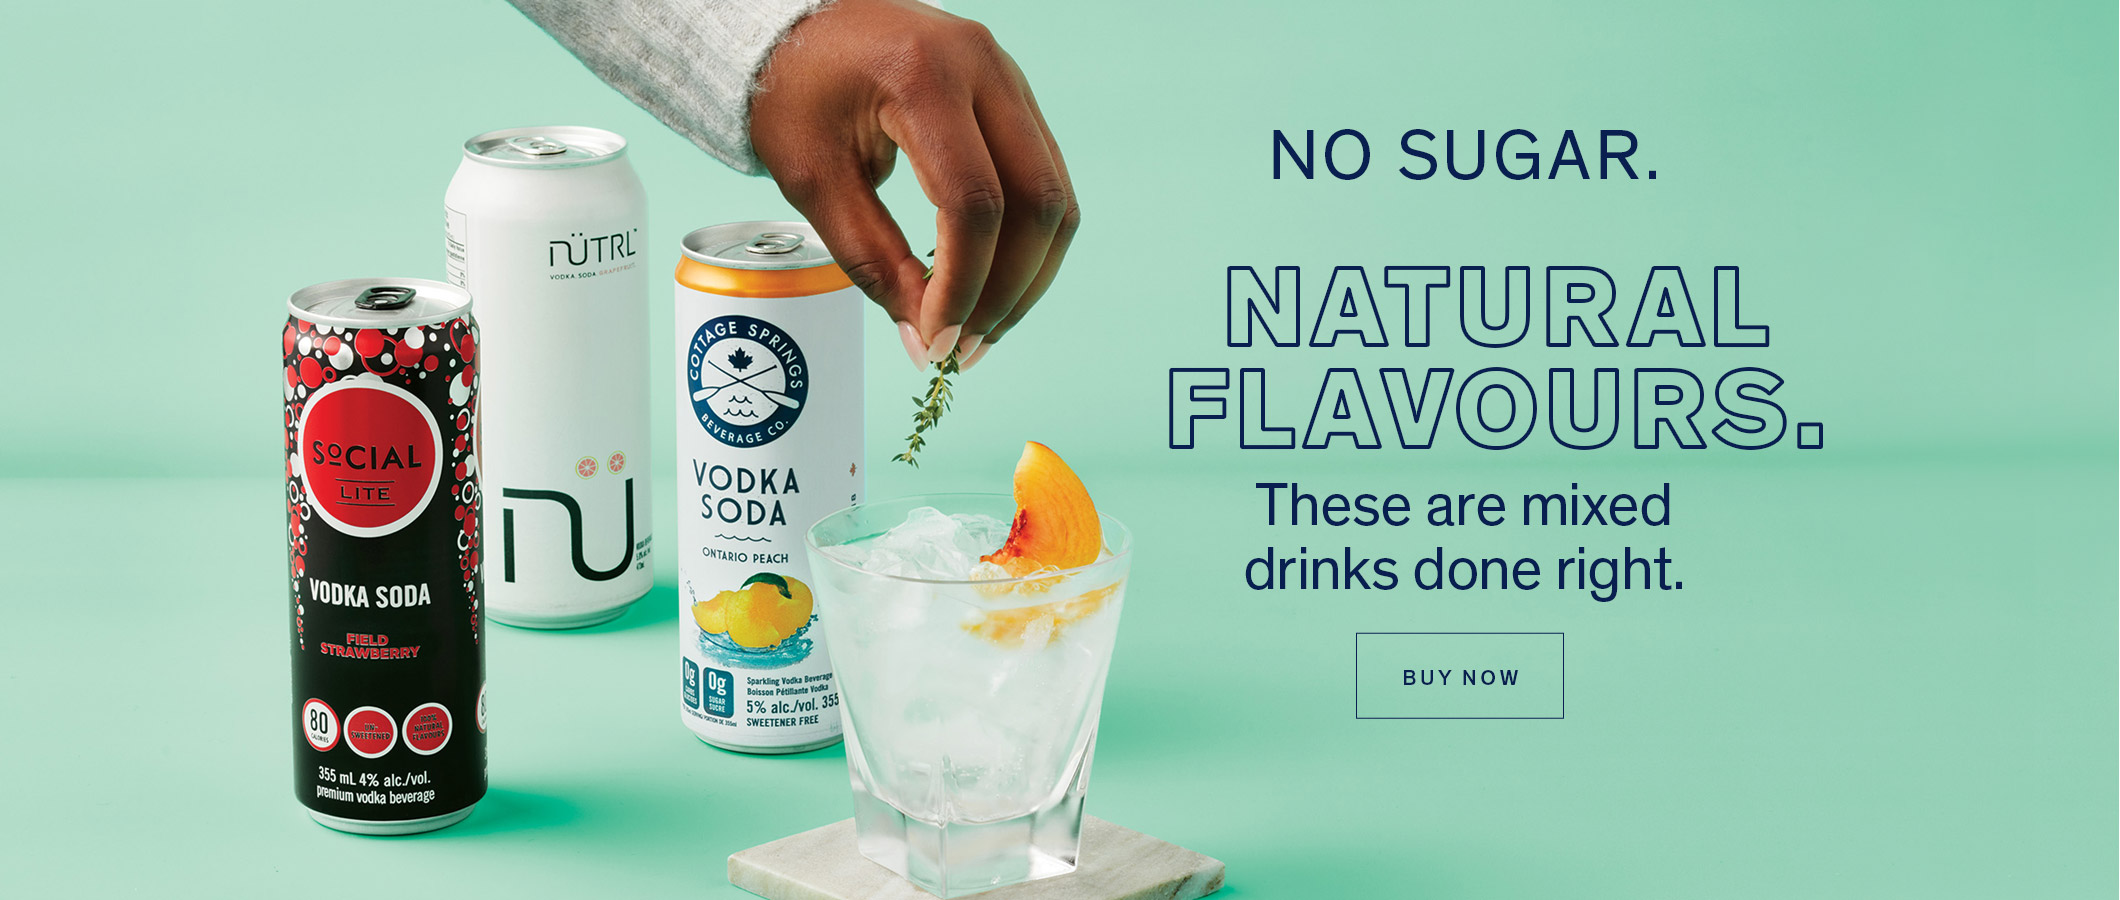 NO SUGAR. NATURAL FLAVOURS. These are mixed drinks done right. BUY NOW